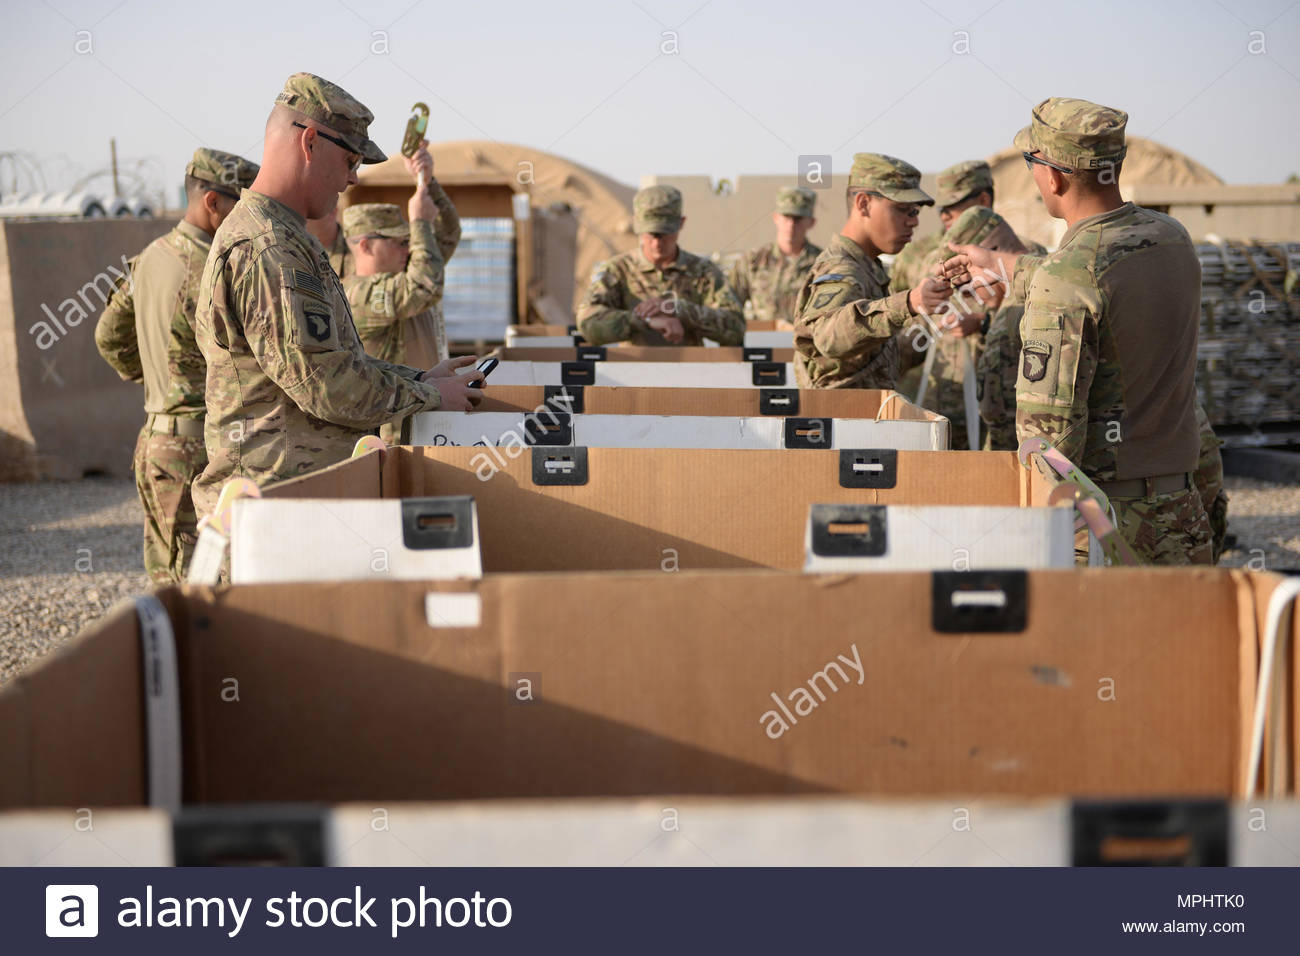 Soldiers from Task Force Forge prepare a shipment of supplies to send to an expeditionary advisory package near Bost airfield in Helmand Province, Afghanistan, March 7, 2017. The package is made up of about 20 advisers from the Army National Guard's 38th Infantry Division. (NATO photo by Kay M. Nissen) - Stock Image